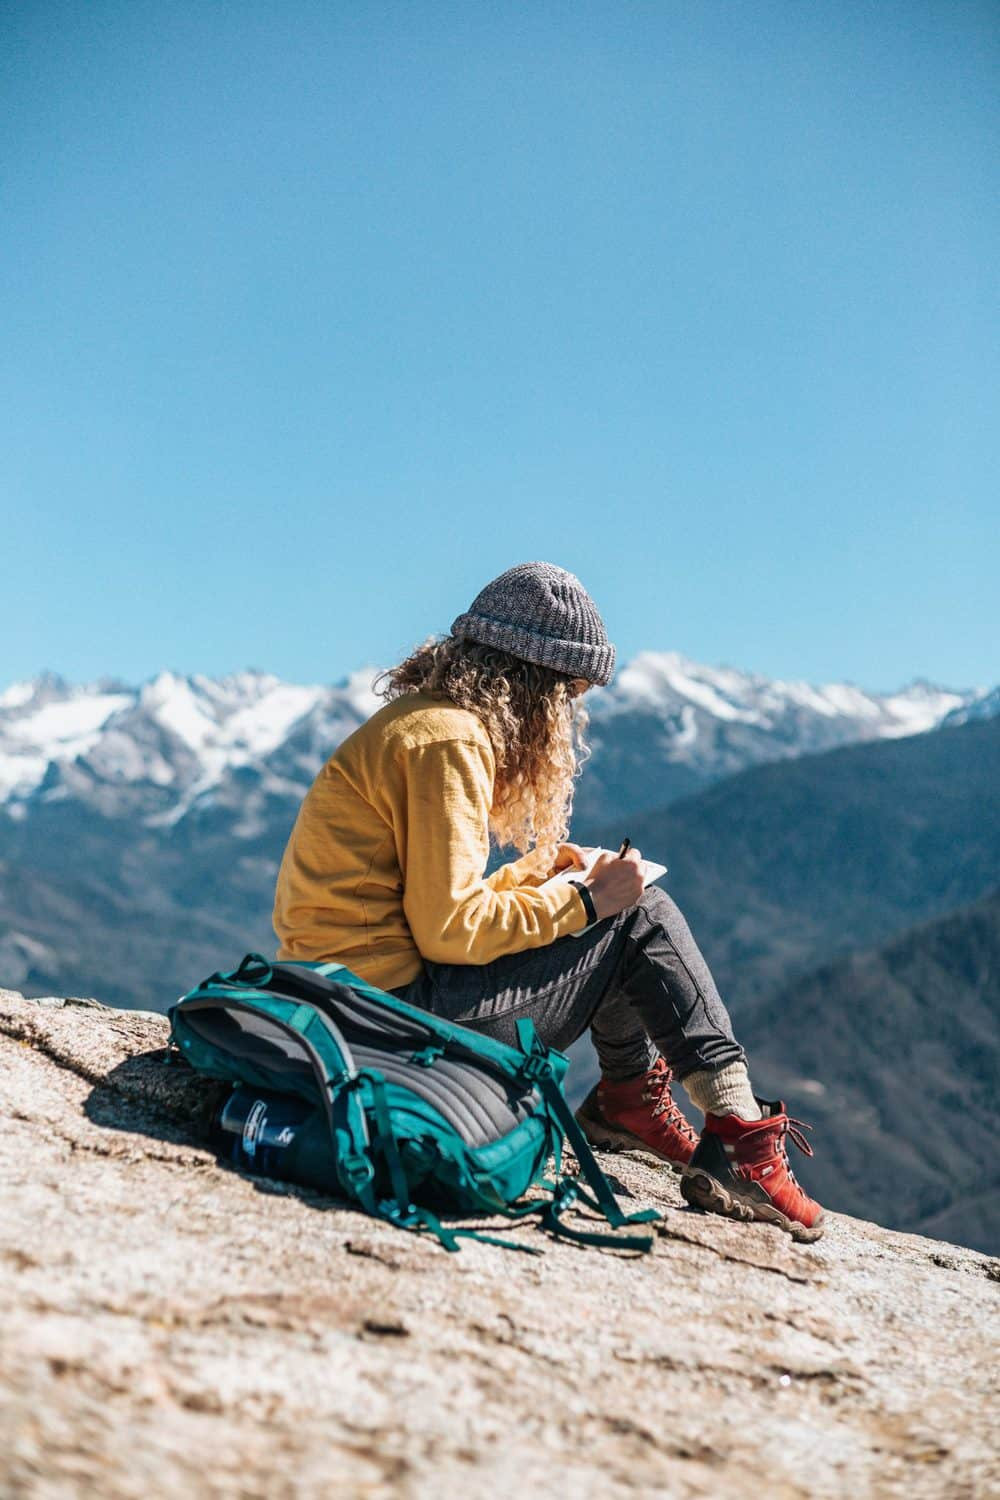 So You Want to Start a Travel Journal